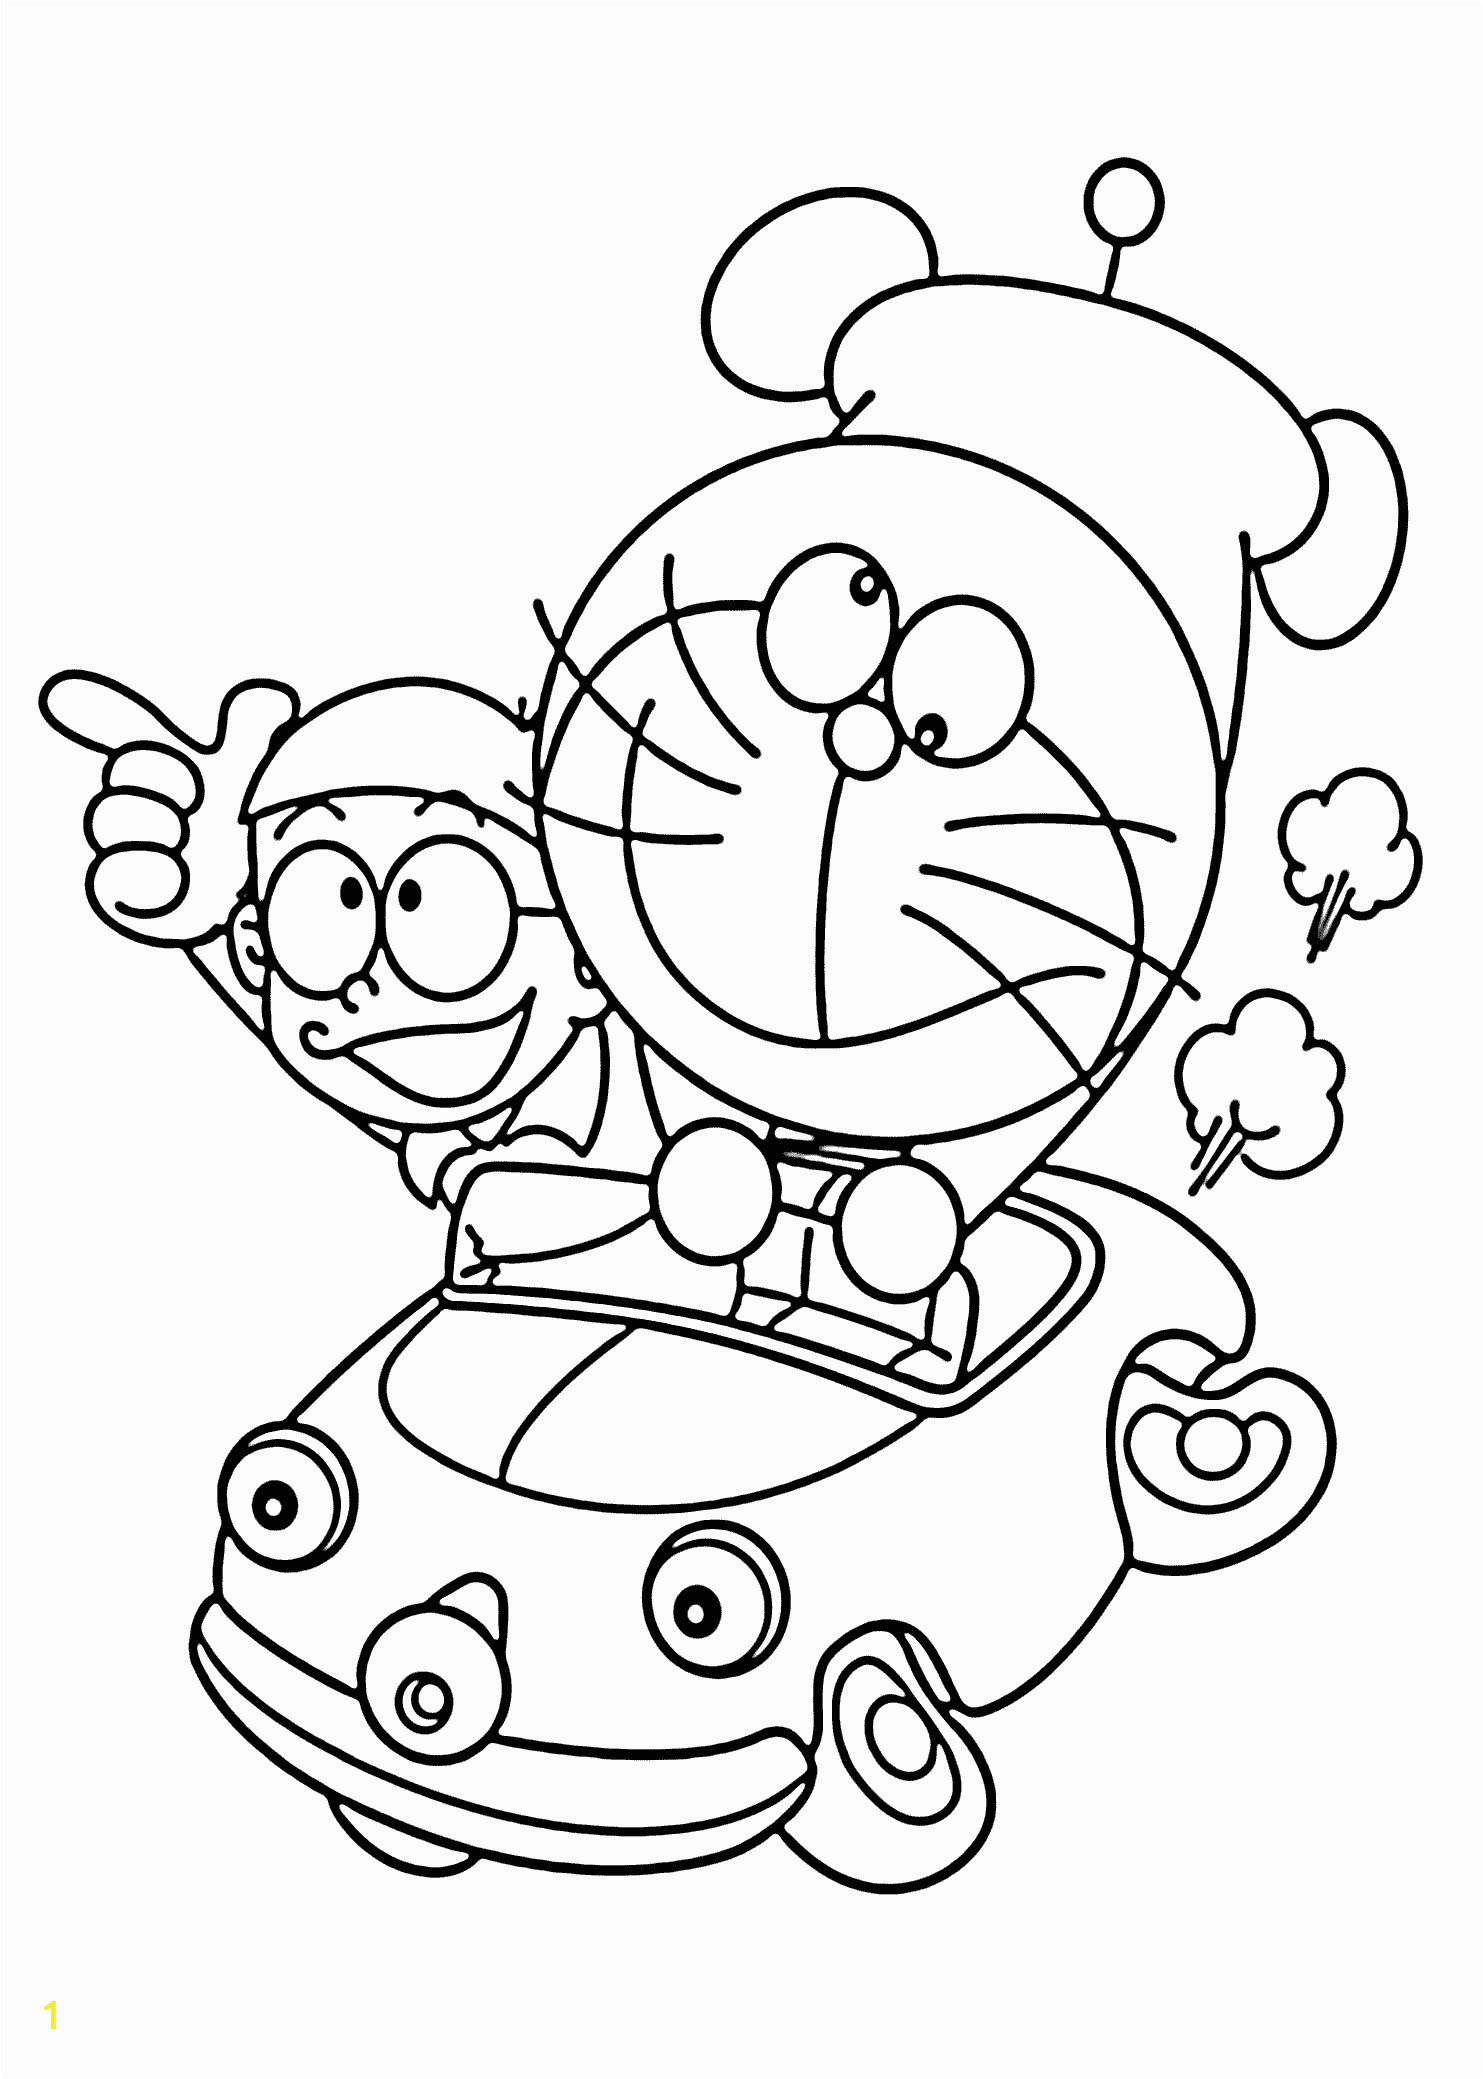 Nobita and Doraemon Coloring Games Doraemon In Car Coloring Pages for Kids Printable Free